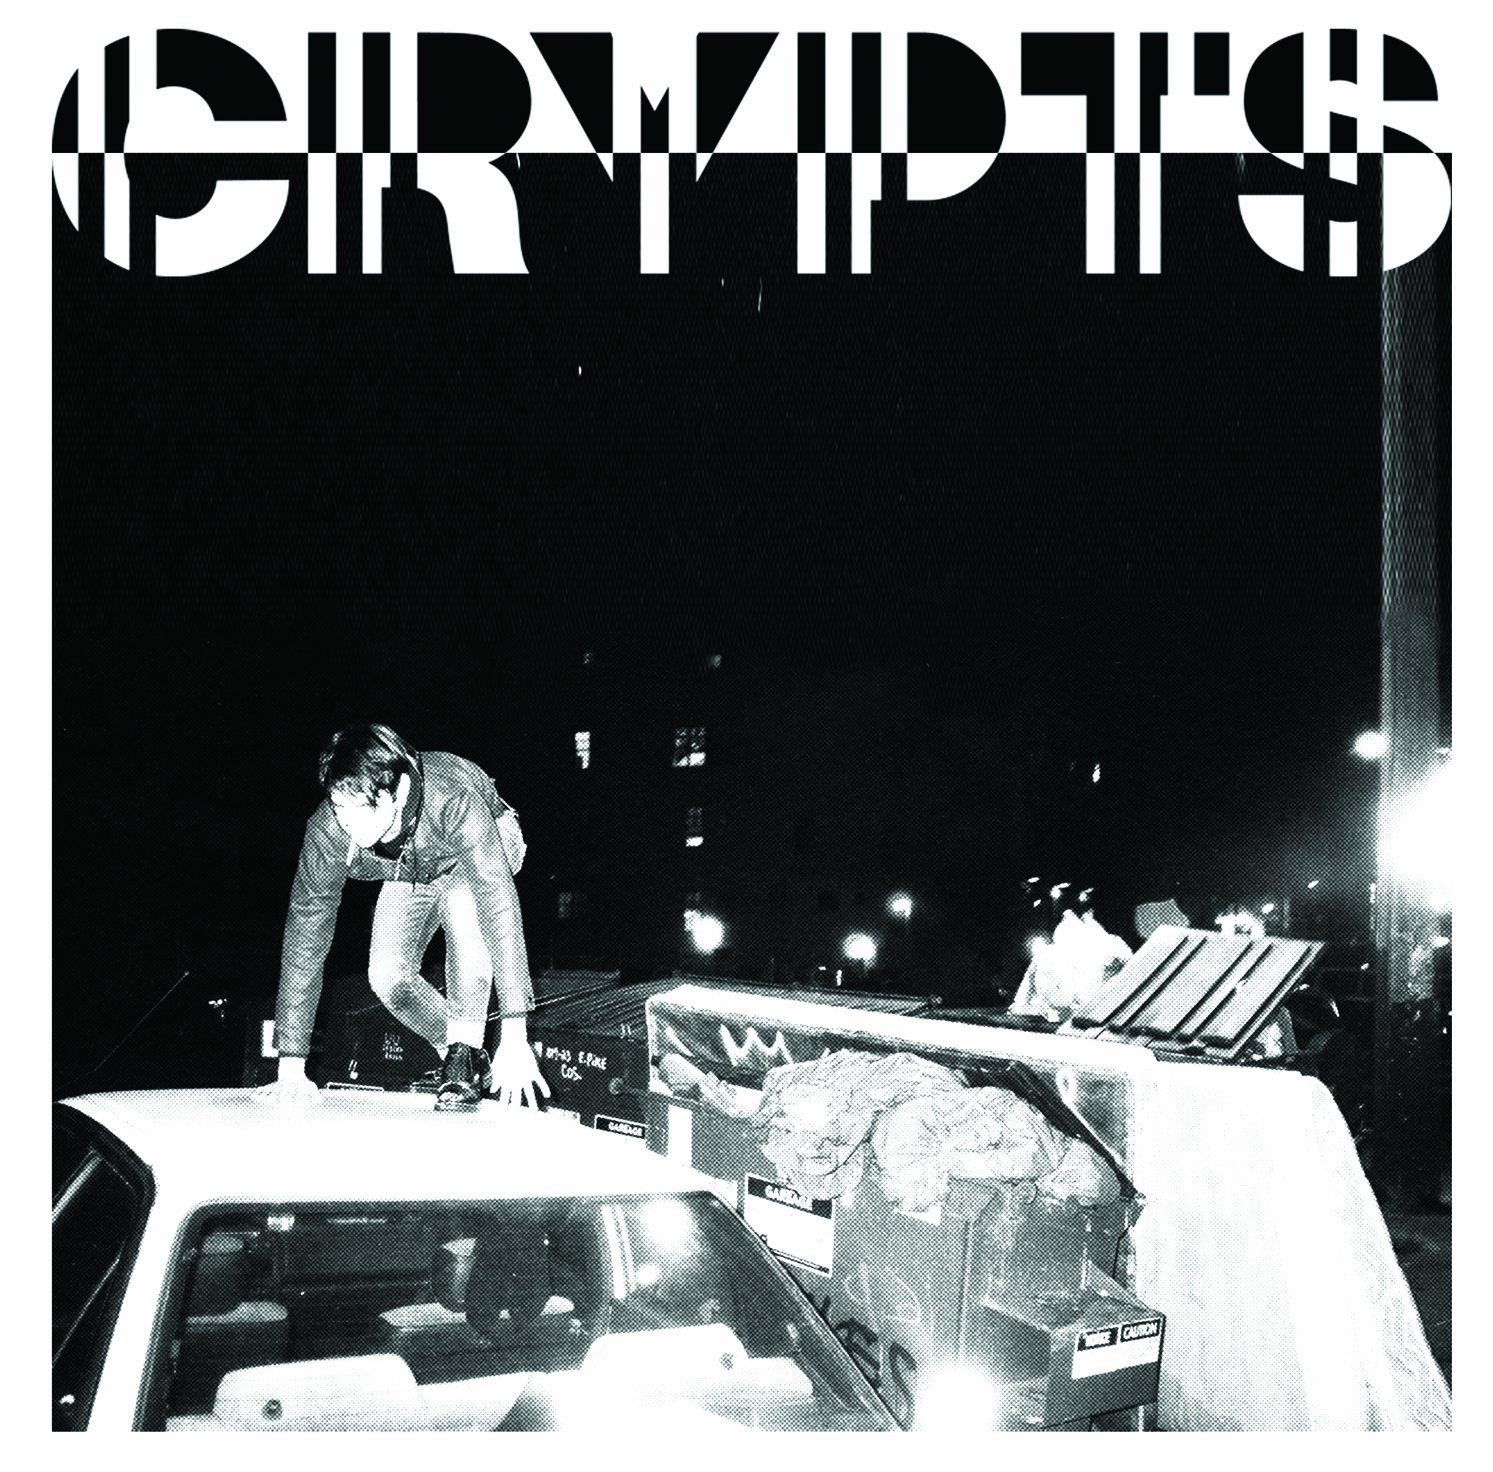 CD : Crypts - Crypts (Digipack Packaging)